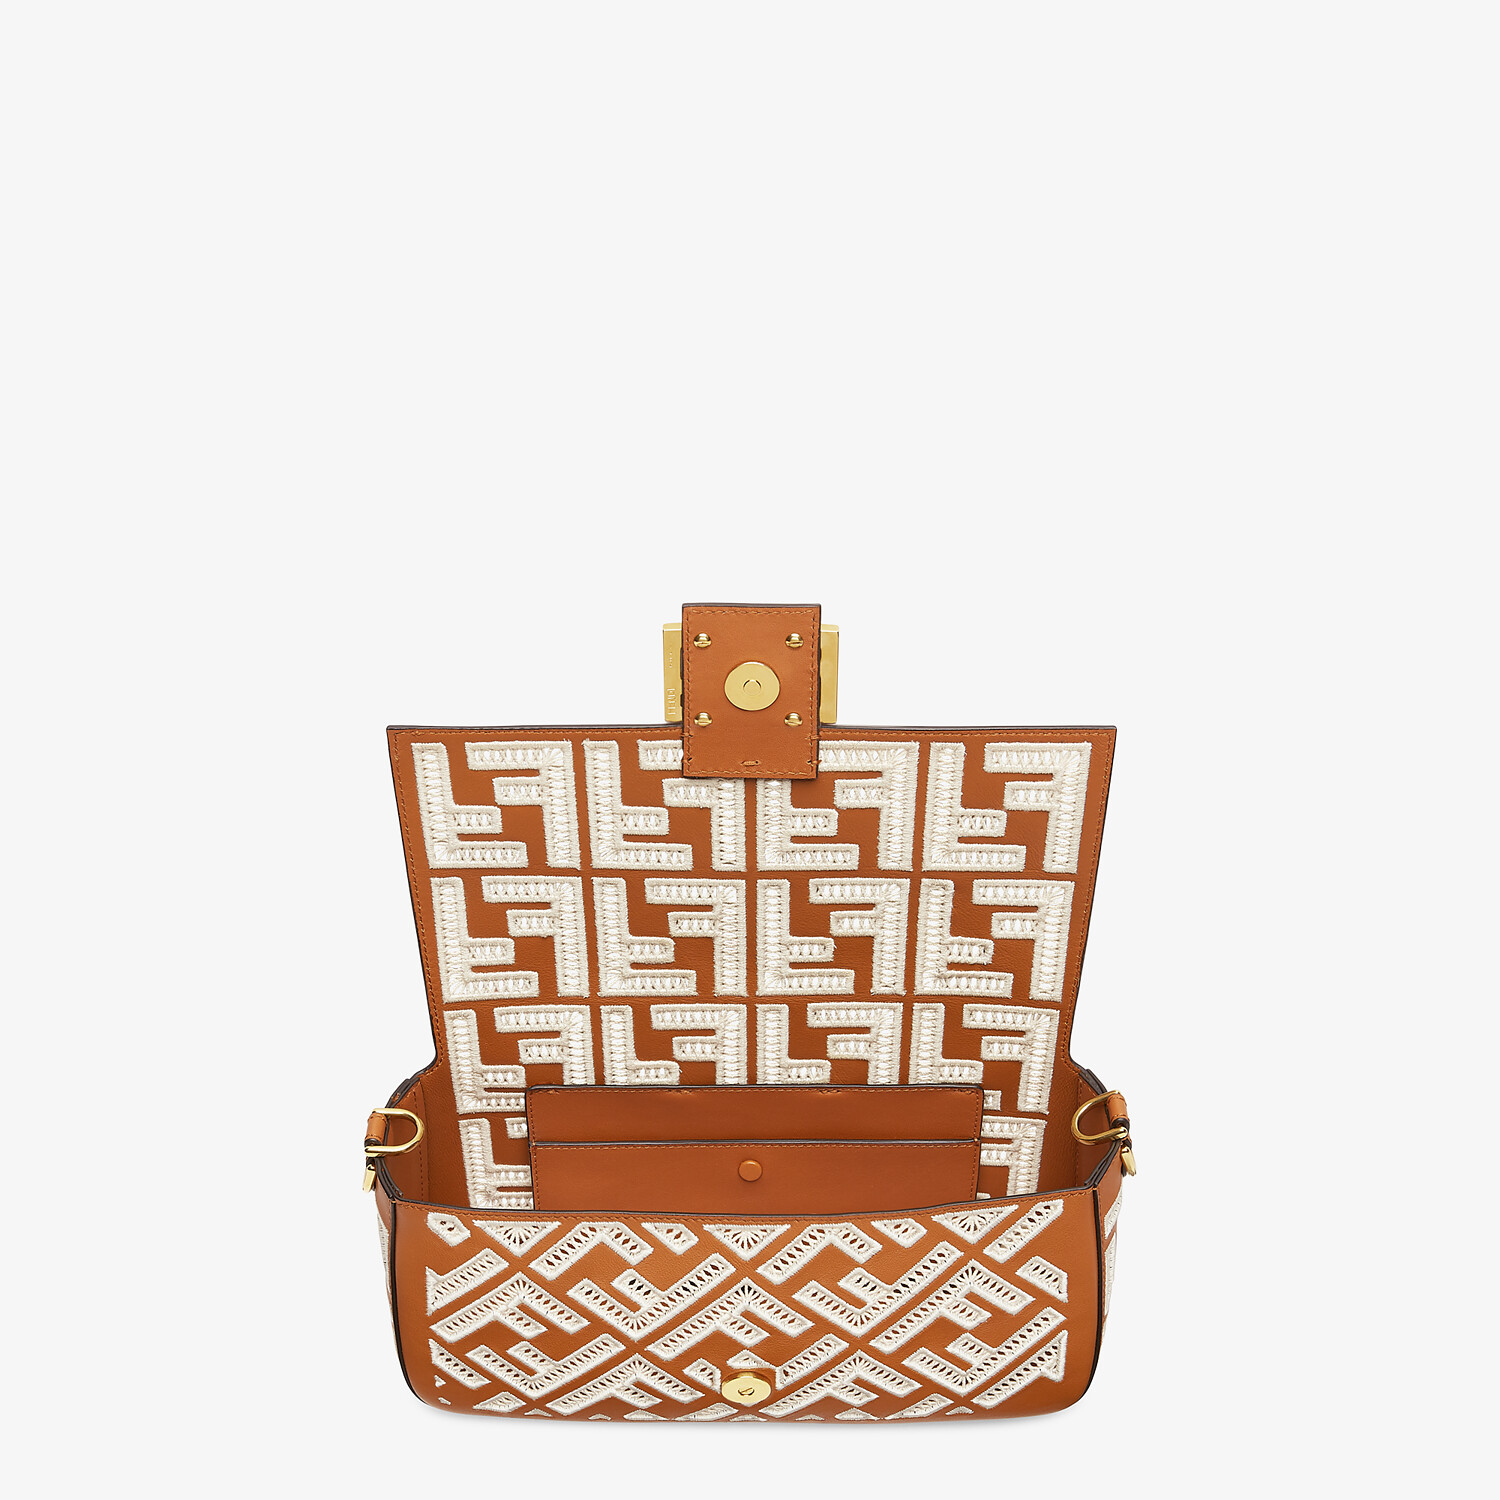 FENDI BAGUETTE - Brown leather bag with FF embroidery - view 5 detail